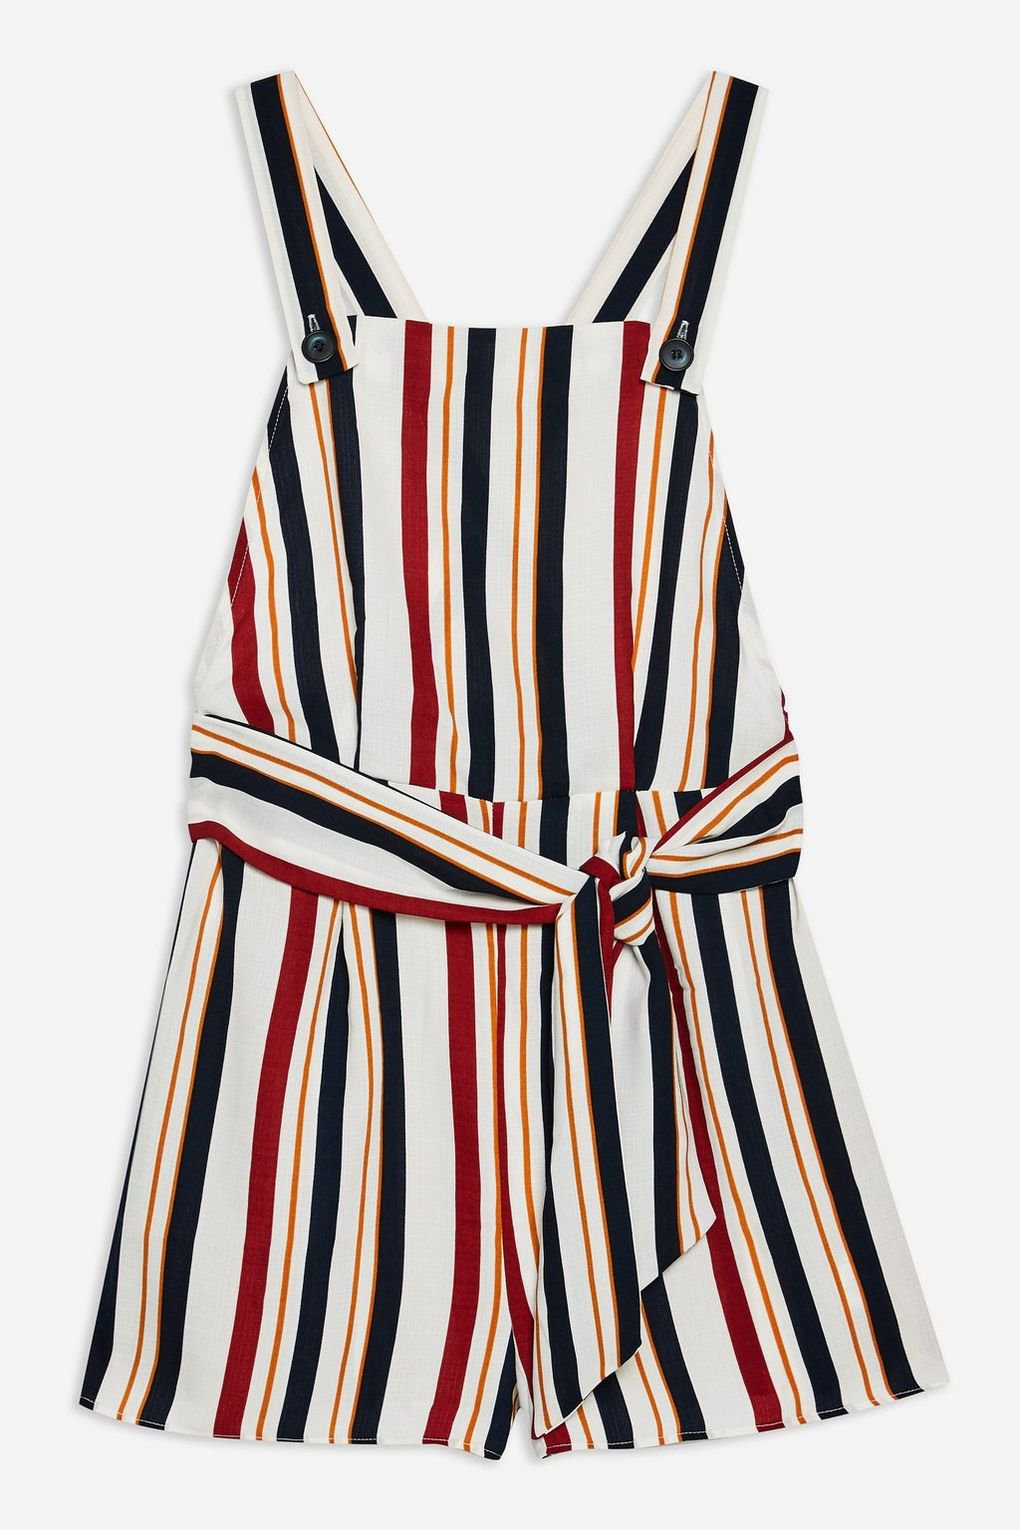 Striped Pinafore Romper - Rompers & Jumpsuits - Clothing - Topshop USA